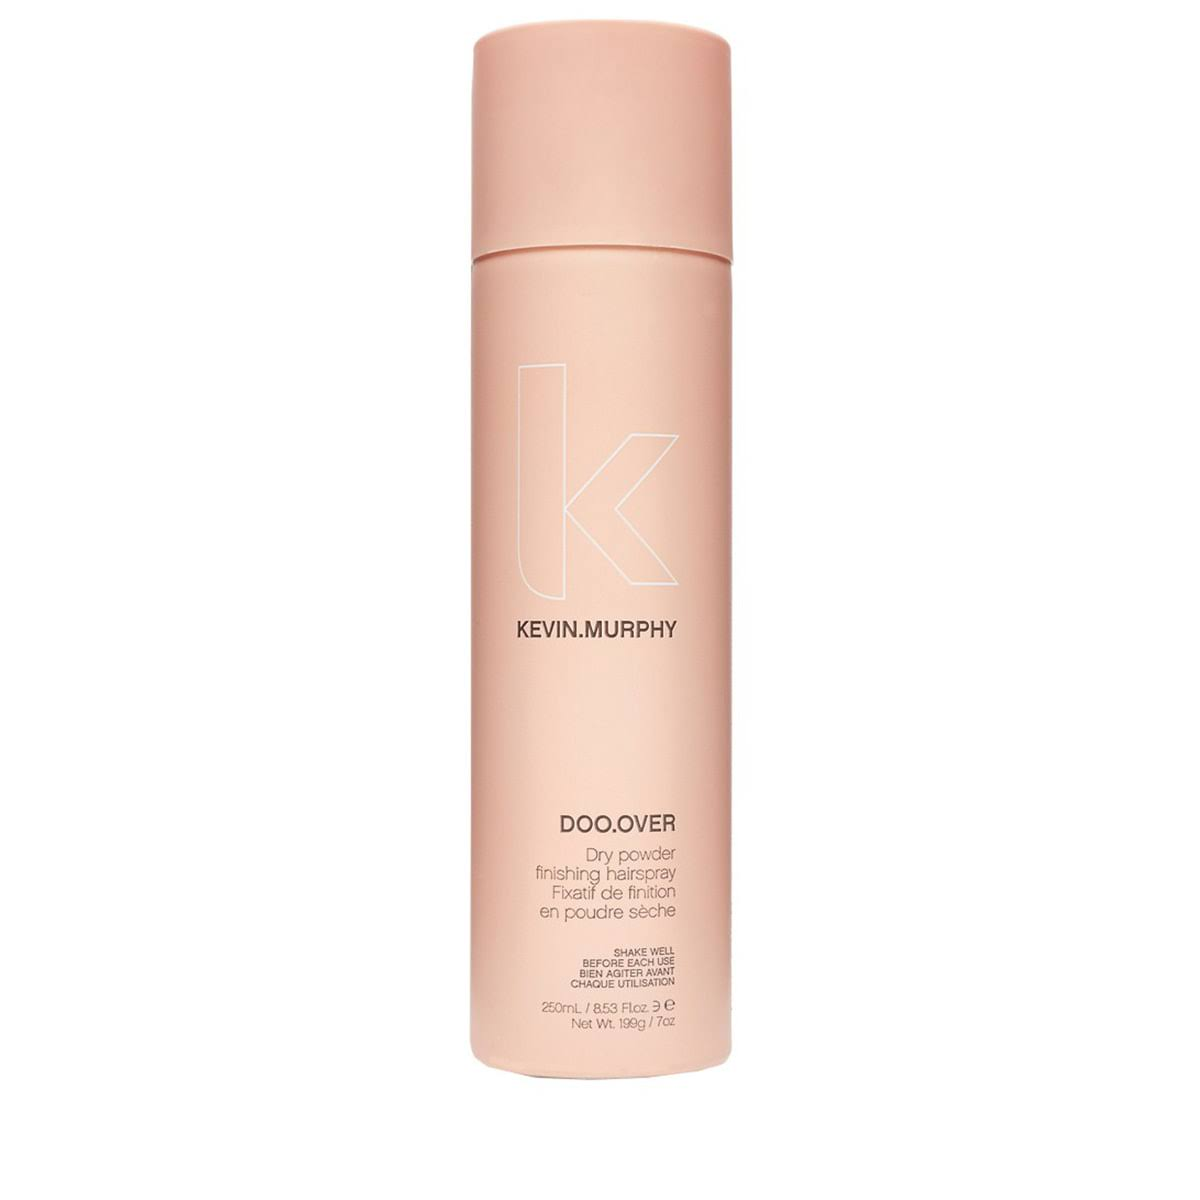 Kevin Murphy Doo Over Dry Powder Finishing Hairspray - 250ml